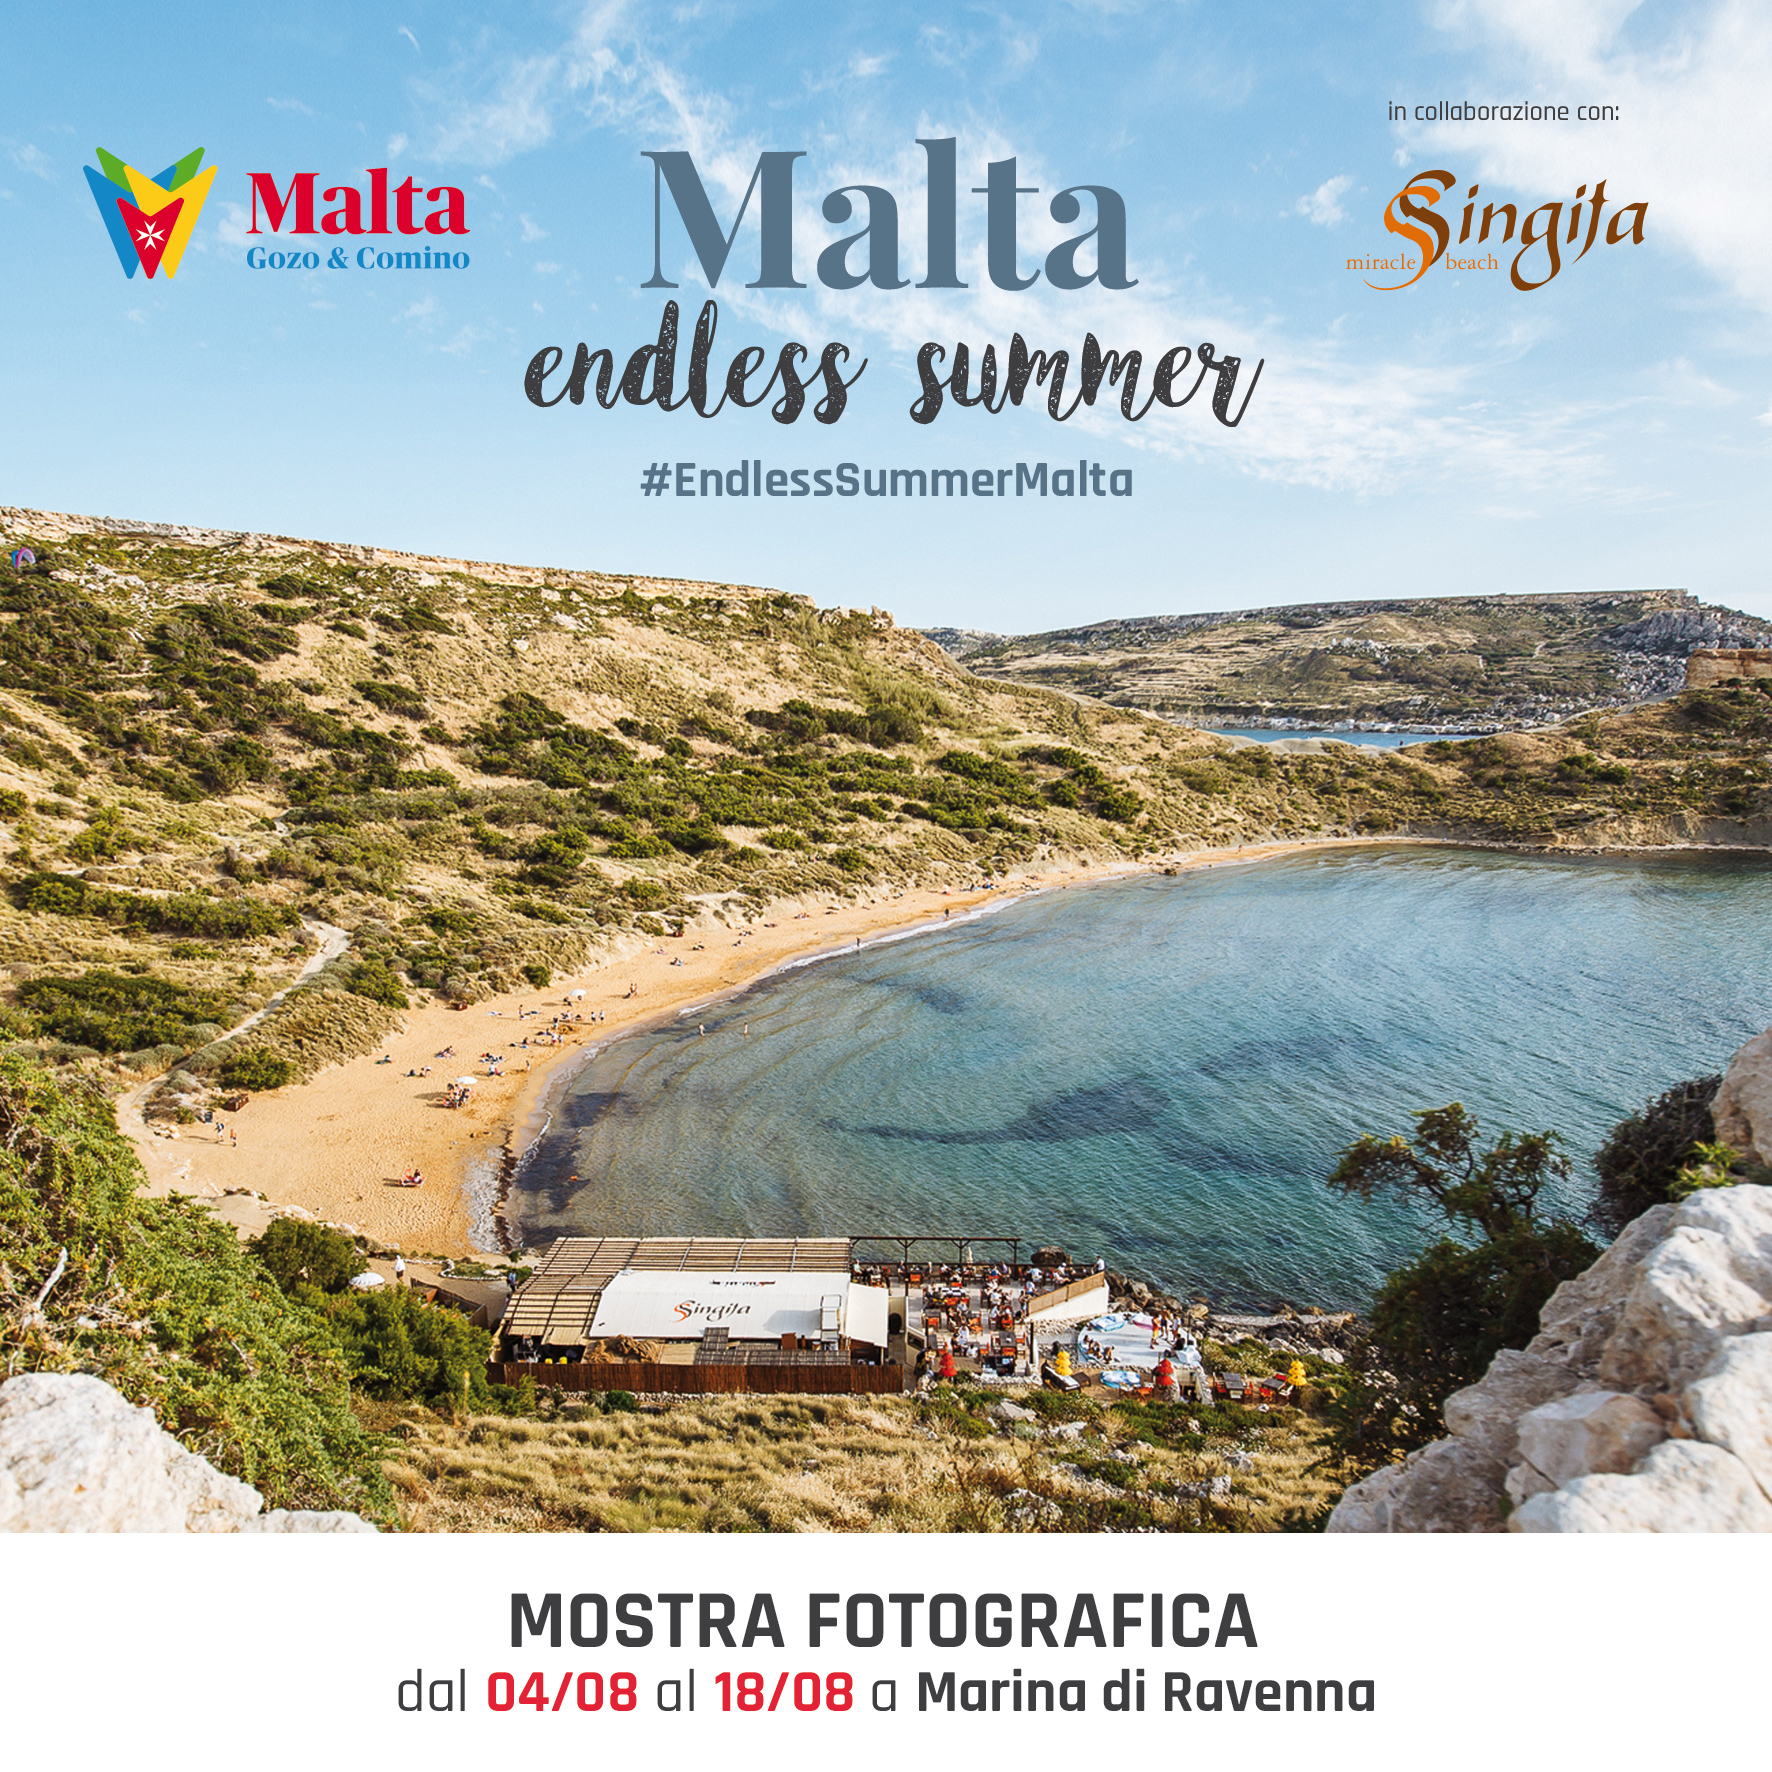 MALTA ENDLESS SUMMER